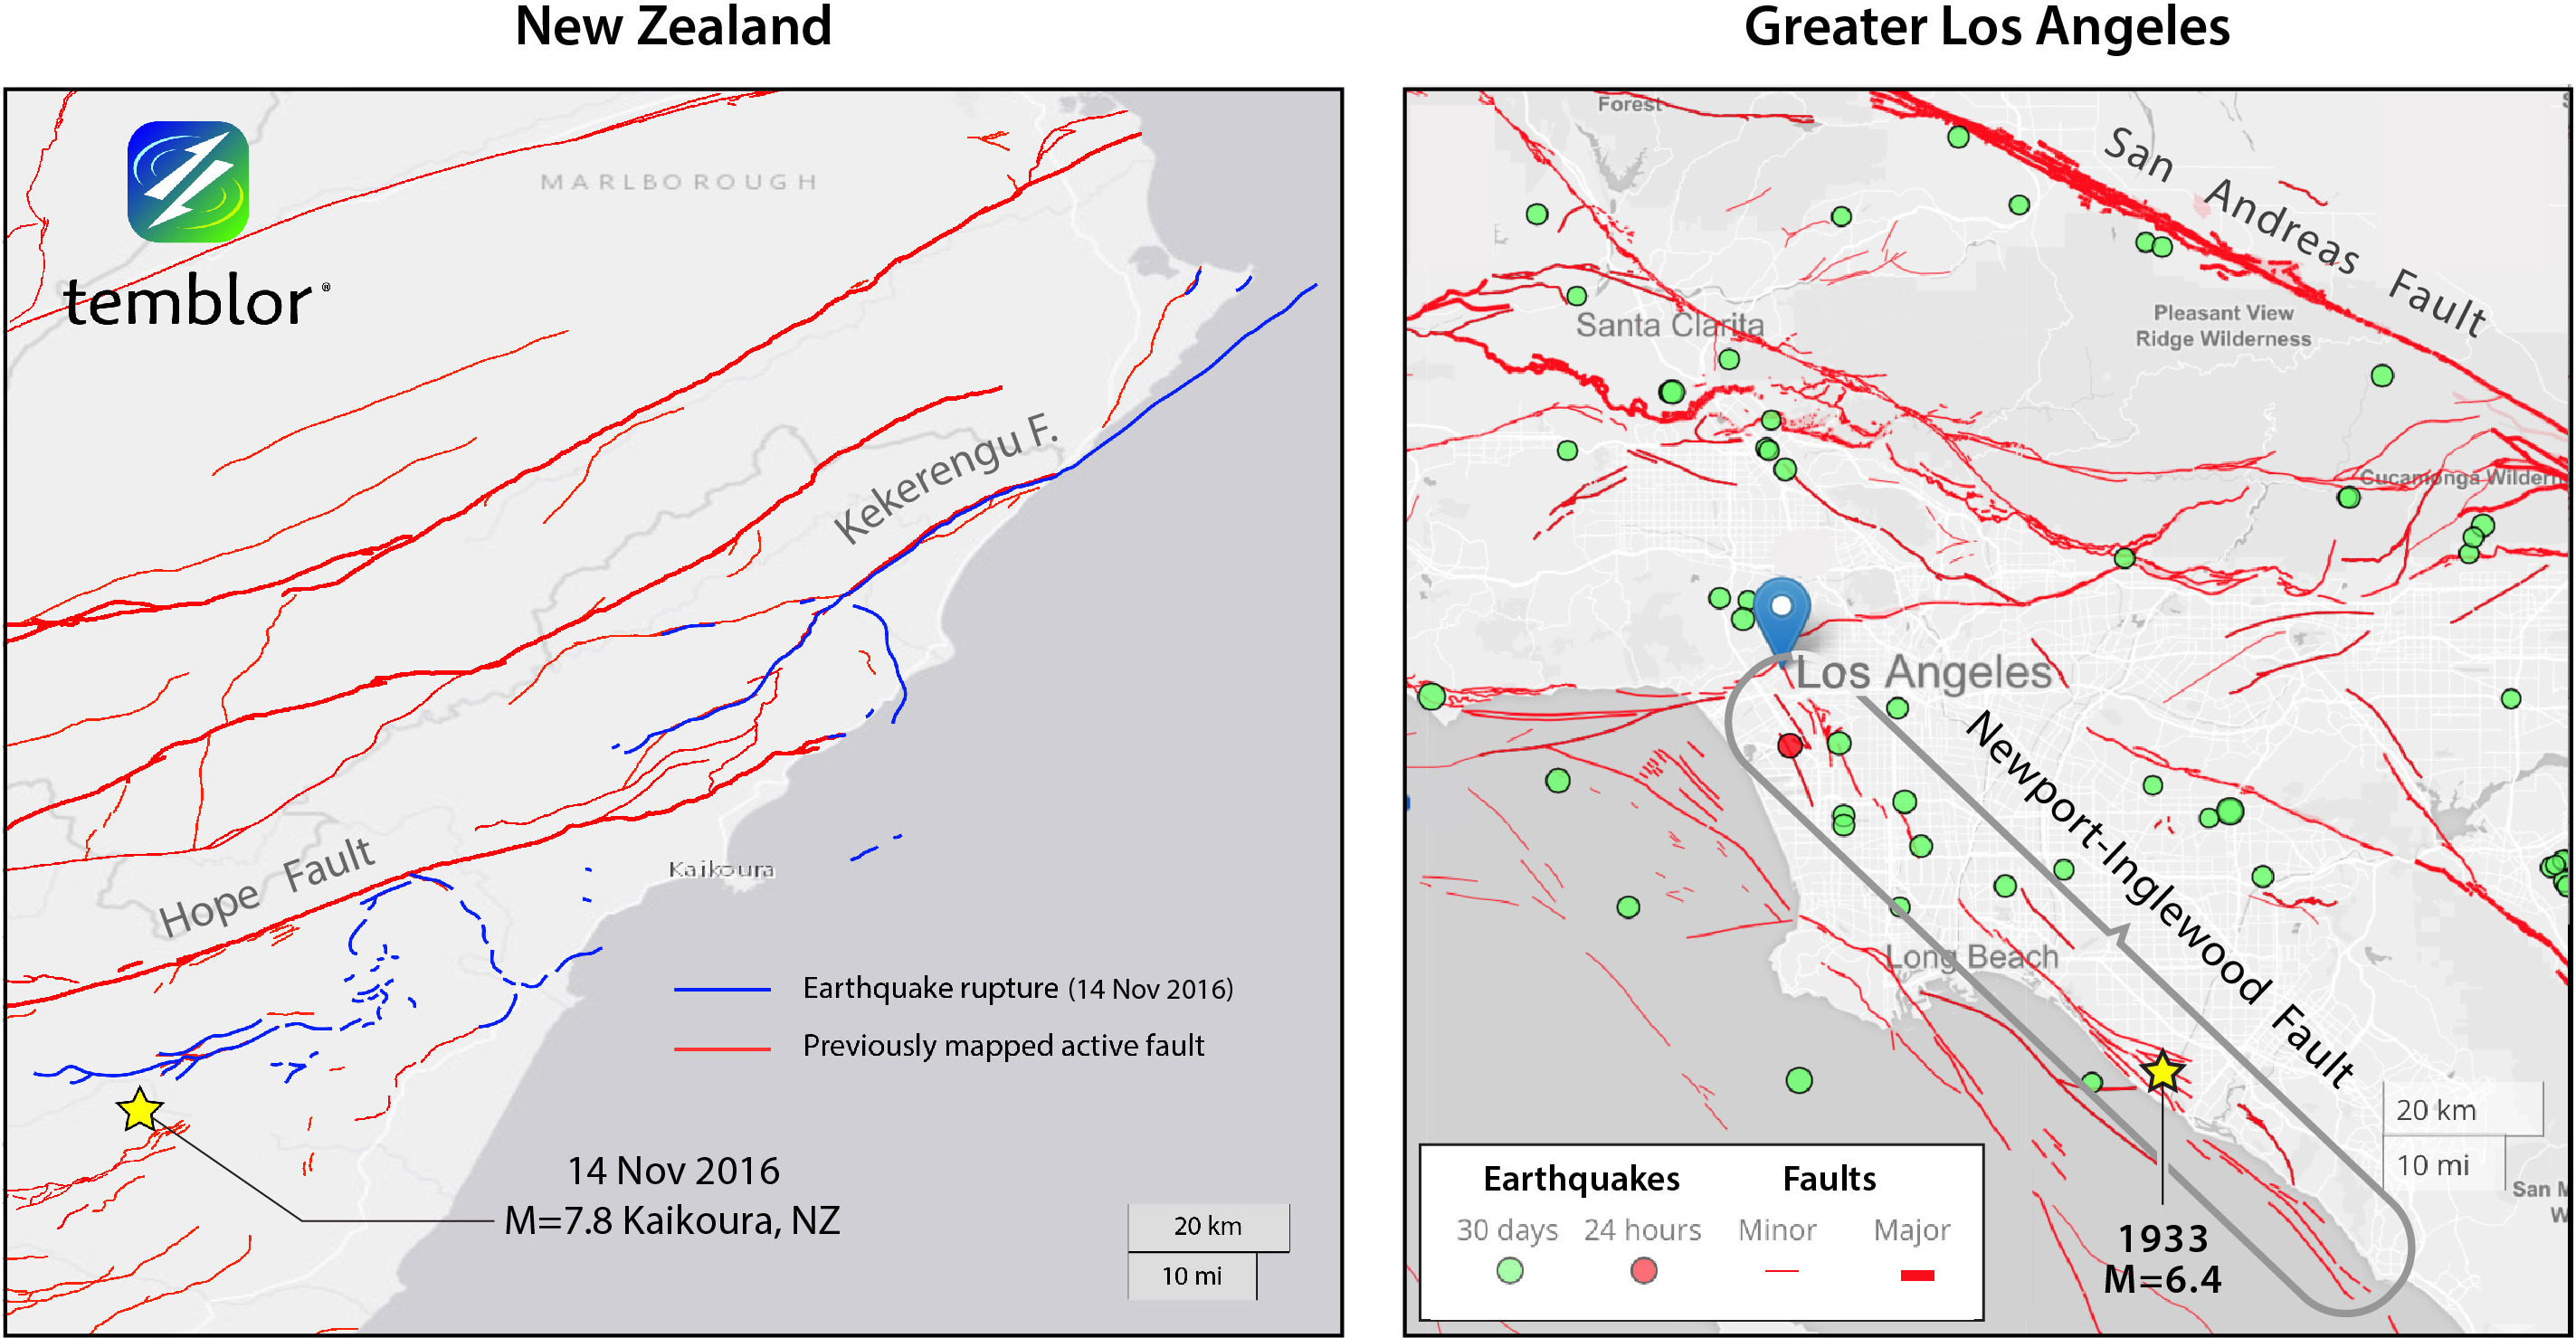 kaikoura-new-zealand-earthquake-rupture-map-los-angeles-fault-map